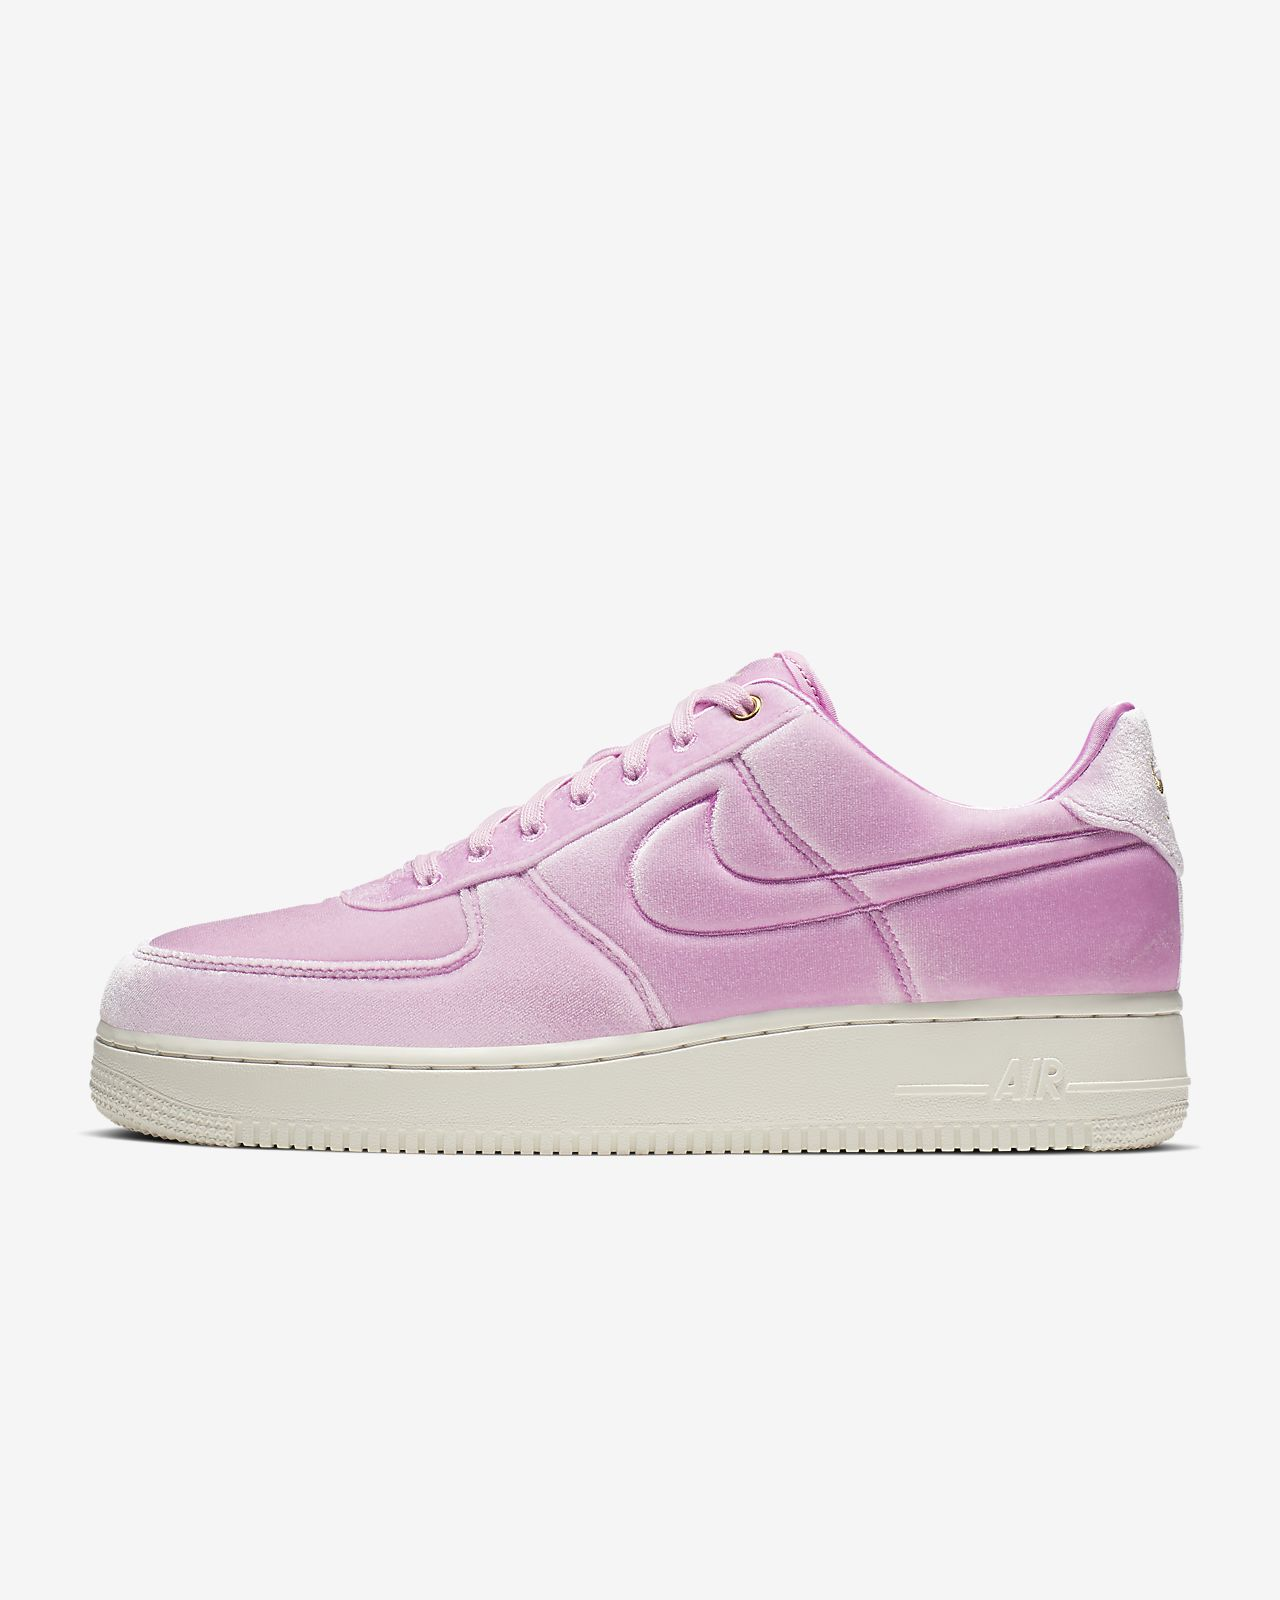 Nike Air Force 1 '07 Premium 3 Men's Shoe